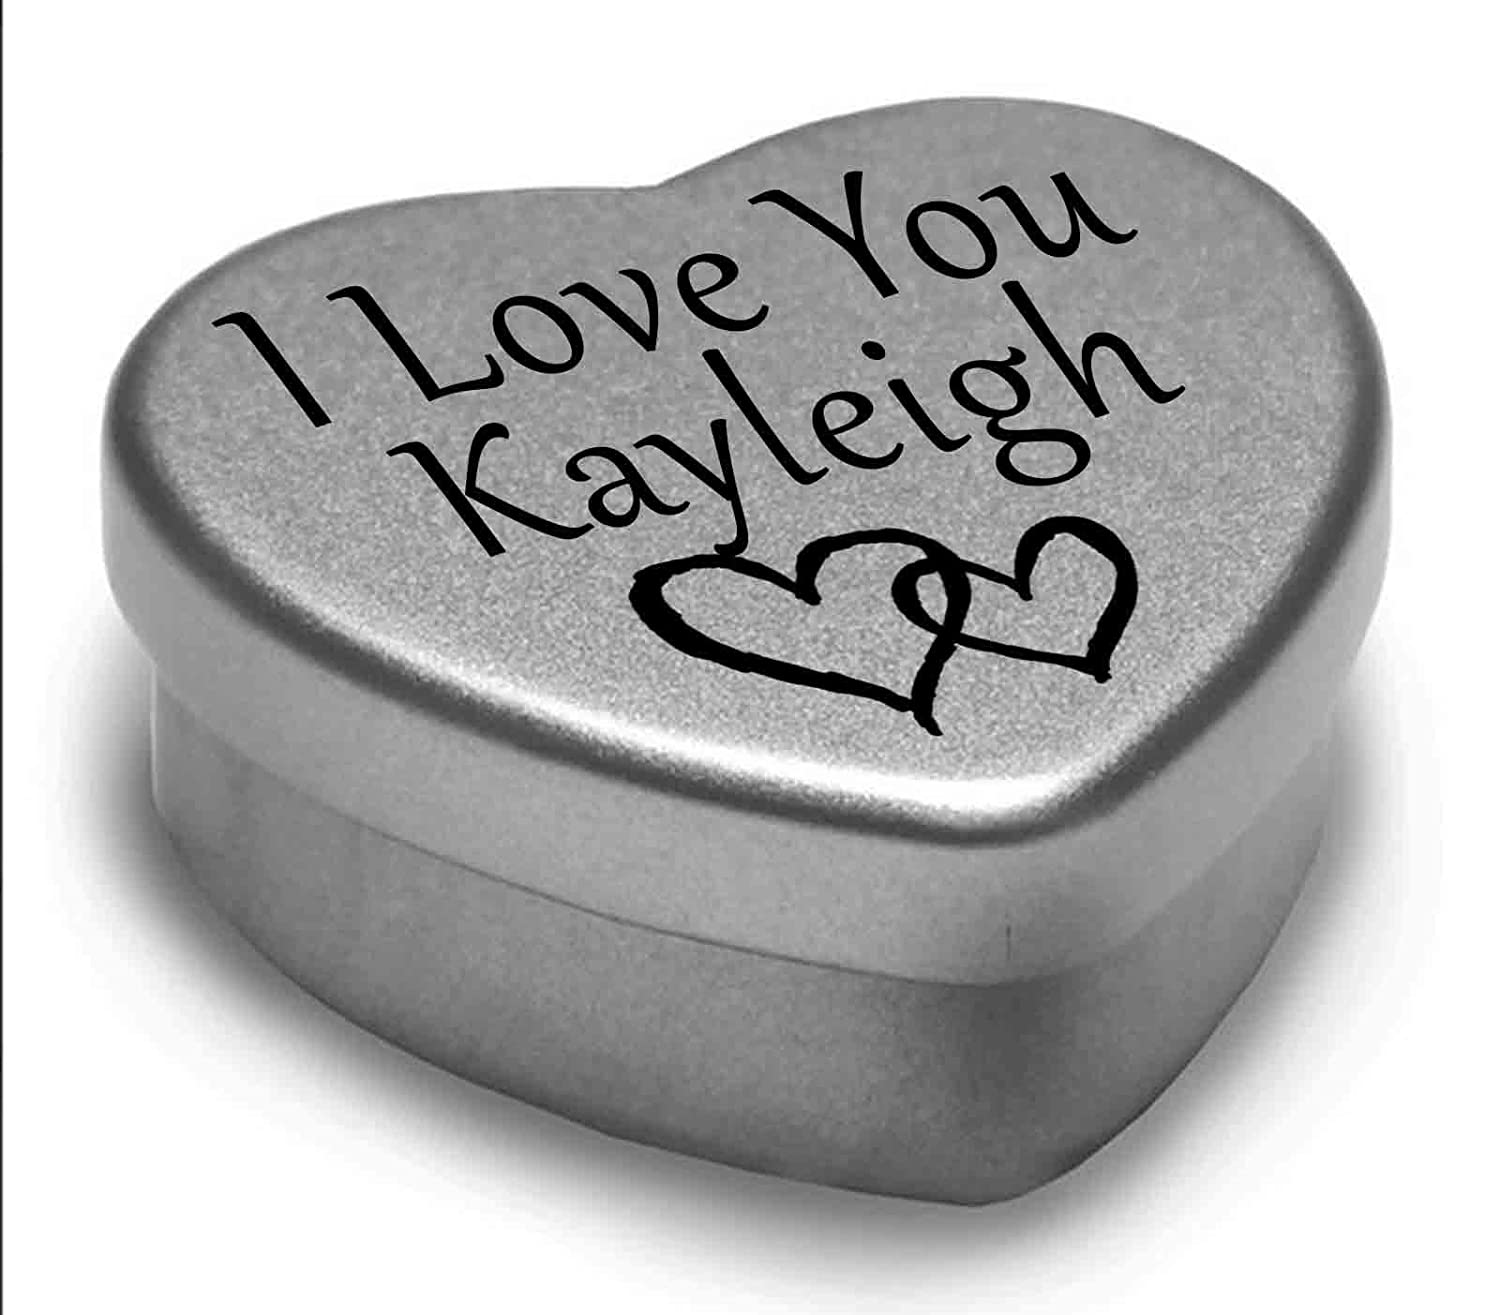 I Love You Kayleigh Mini Heart Tin Gift For I Heart Kayleigh With Chocolates. Silver Heart Tin. Fits Beautifully in the Palm of Your Hand. Great as a Birthday Present or Just as a Special Gift to Show Somebody How Much You Love Them. Gift In Can Ltd